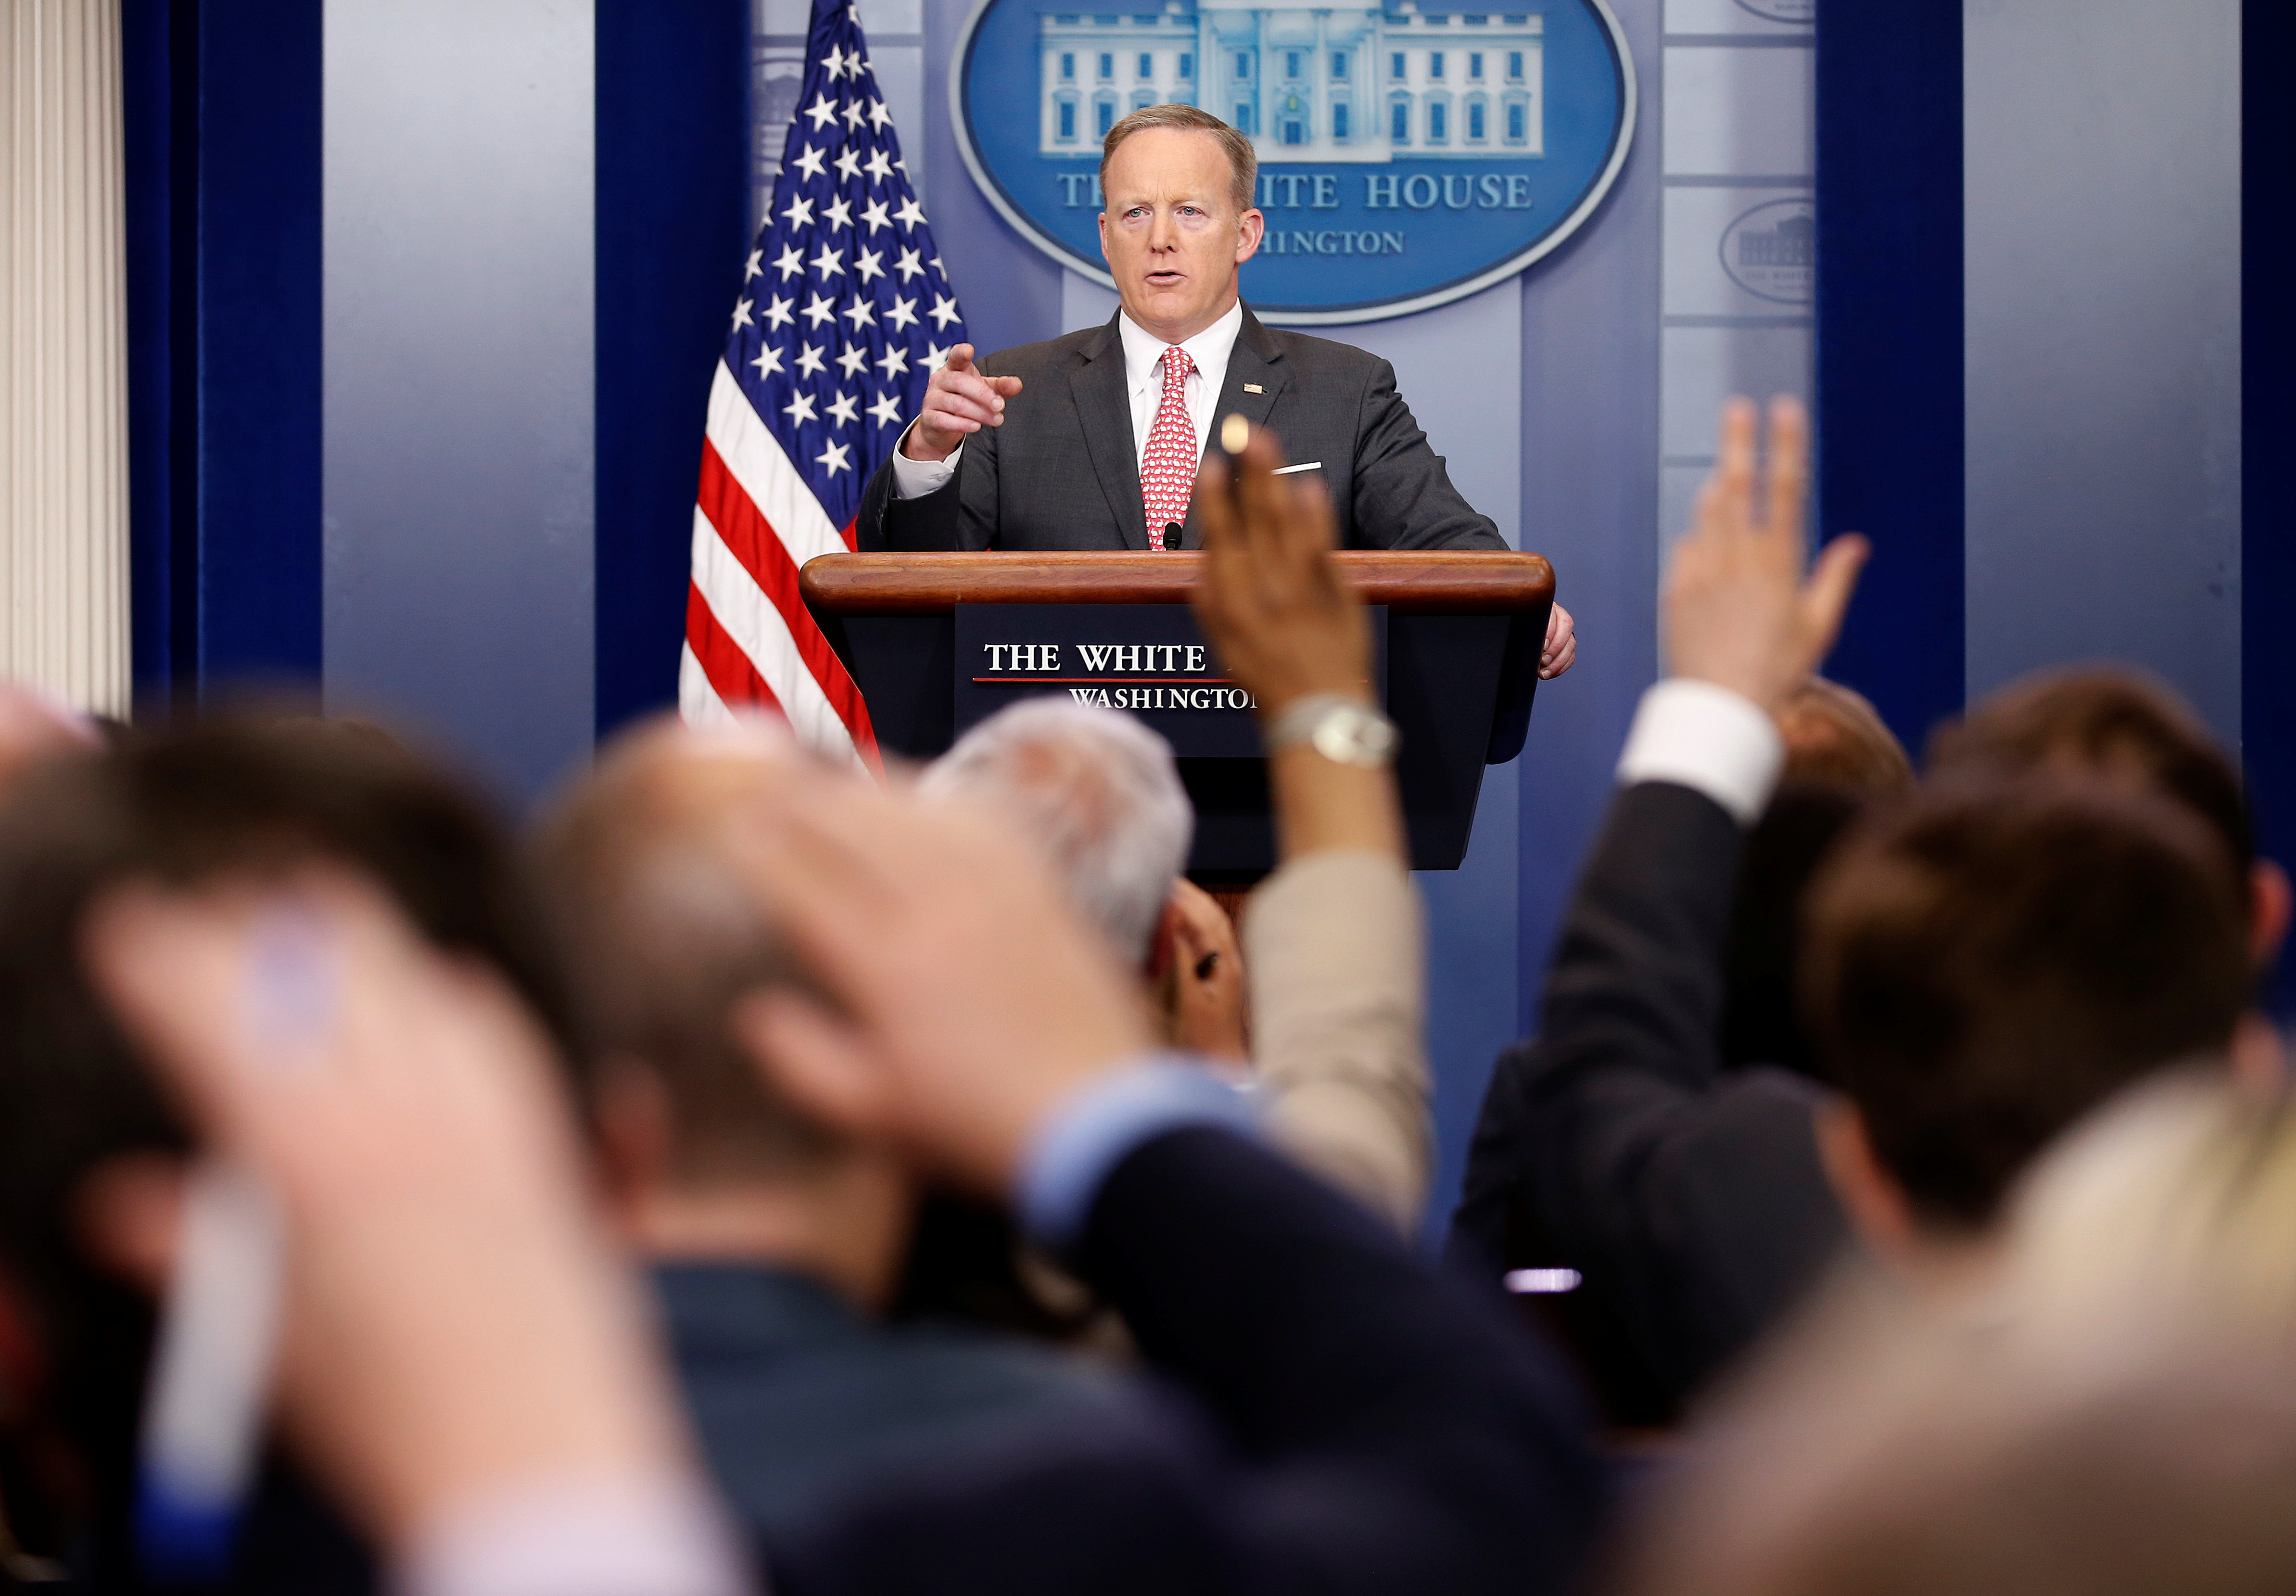 White House Press Secretary Sean Spicer takes a question during a press briefing at the White House in Washington, April 17, 2017.